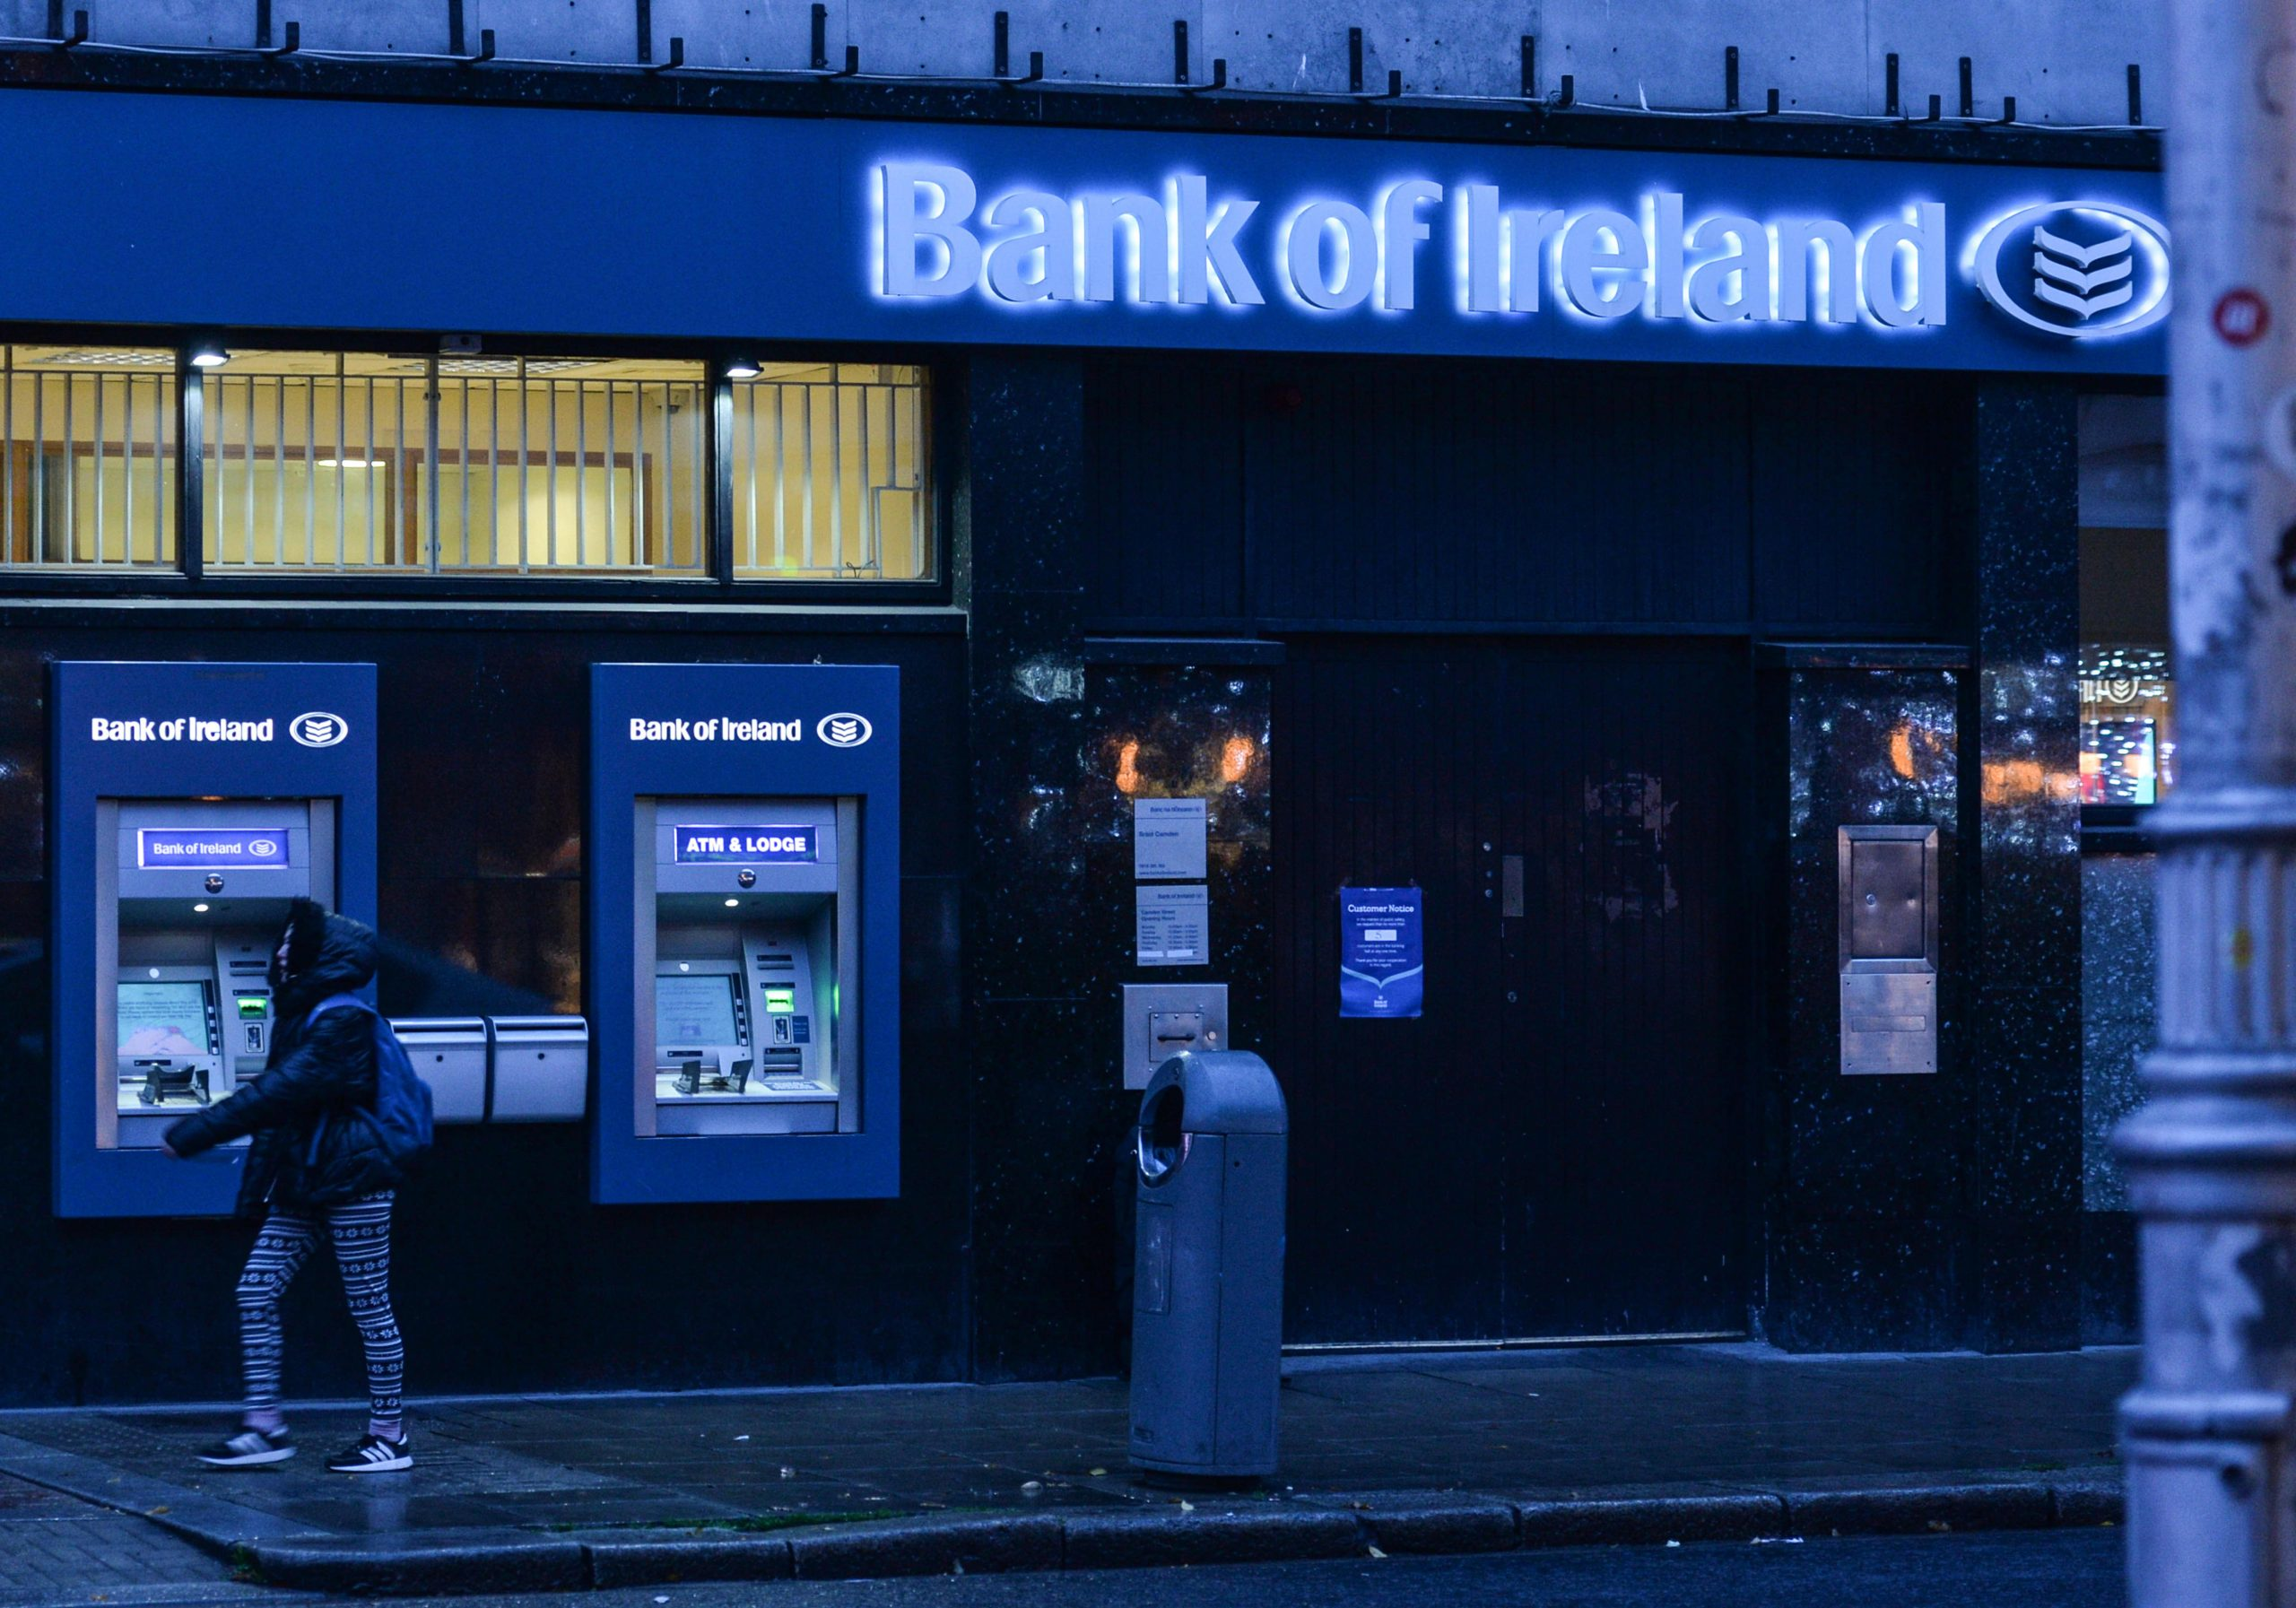 Big bank exits and fintech upstarts: Ireland's banking landscape is undergoing drastic change